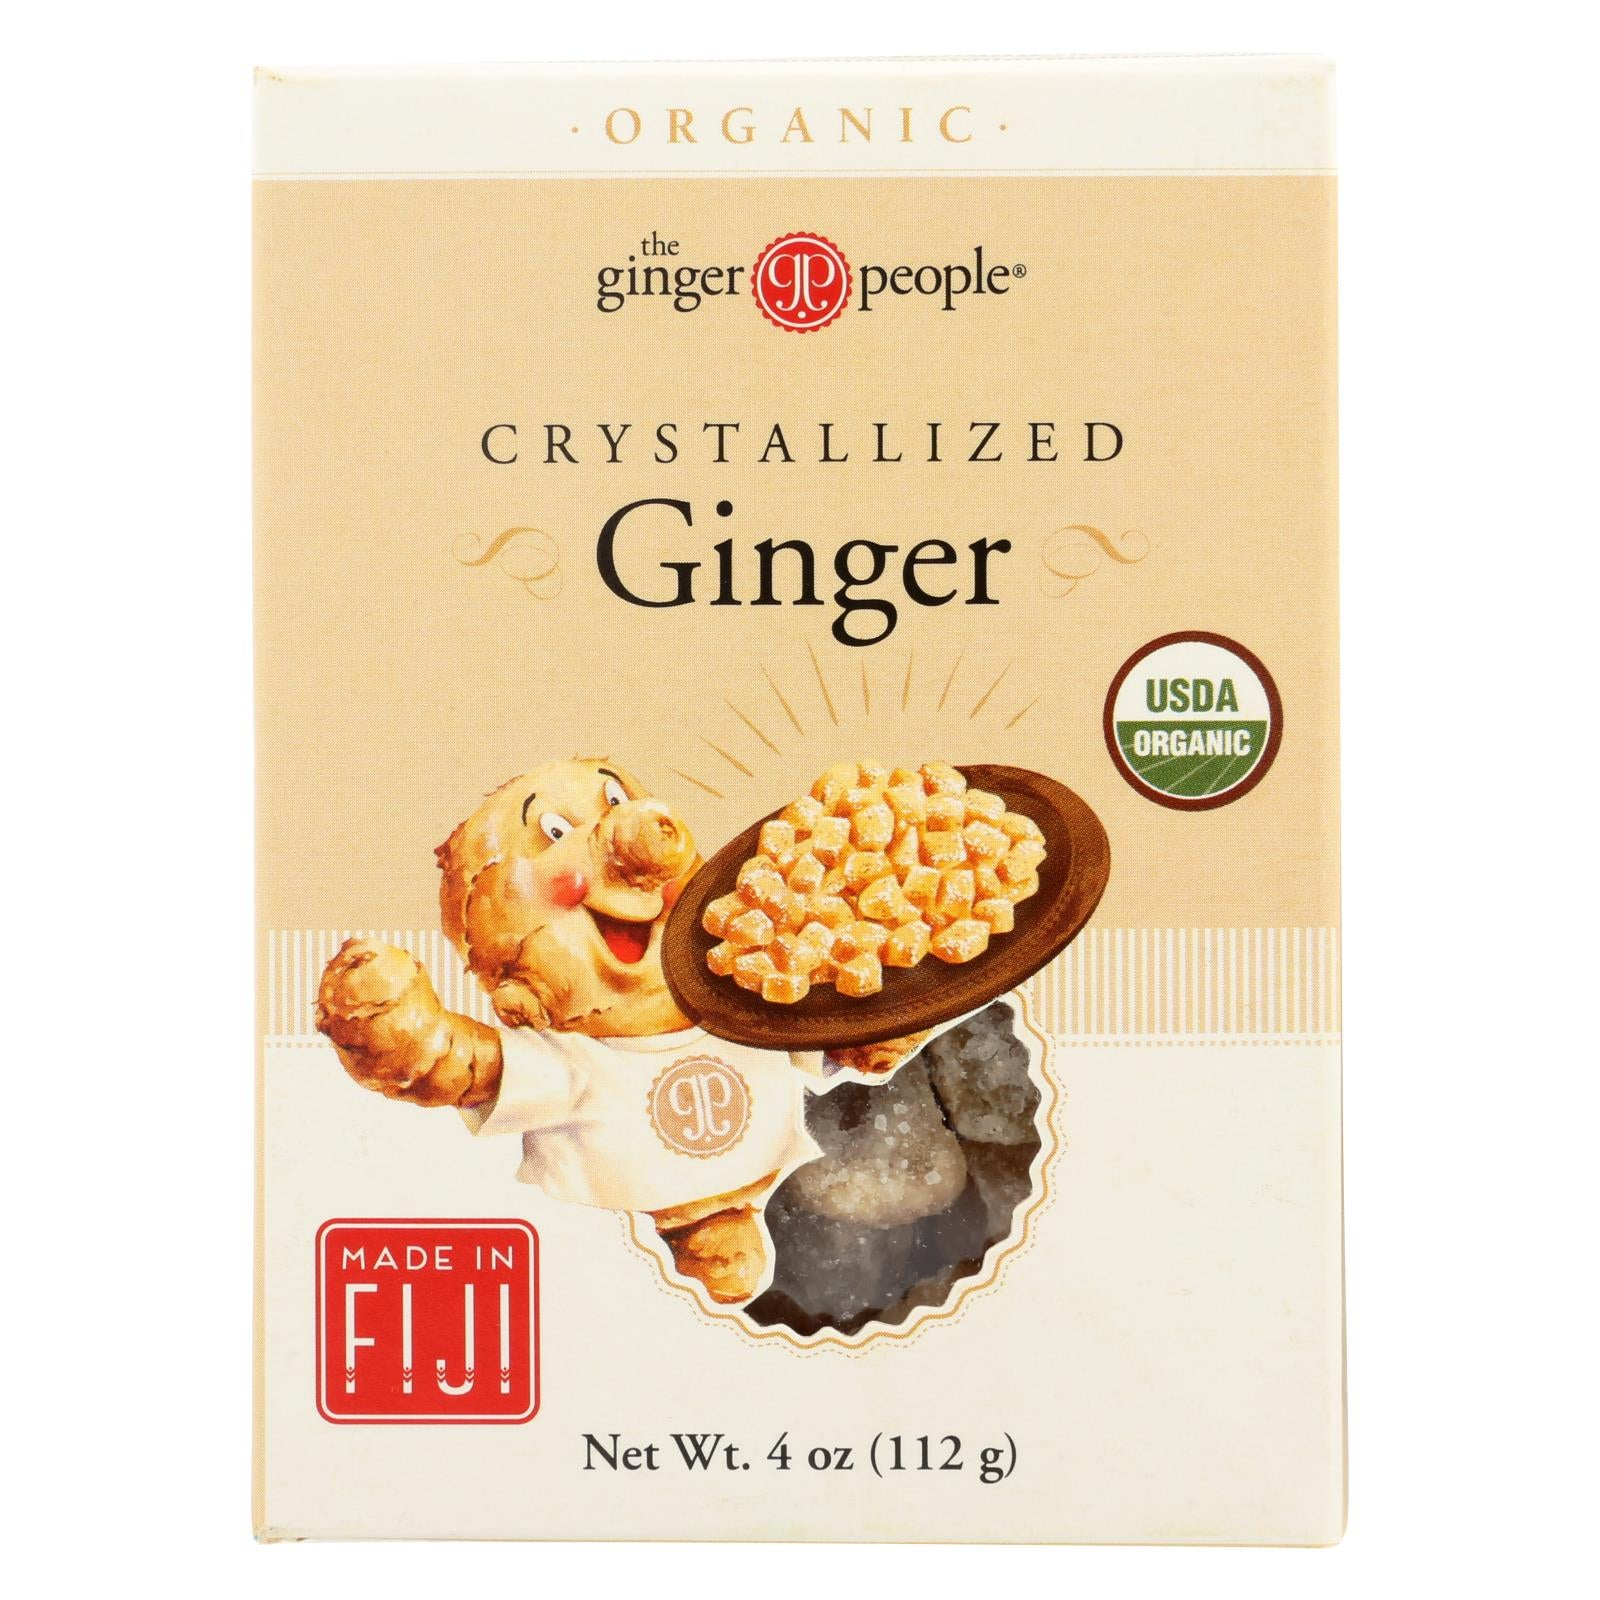 Ginger People Organic Crystallized Ginger Box - 4 Oz - Case Of 12 HG0774497